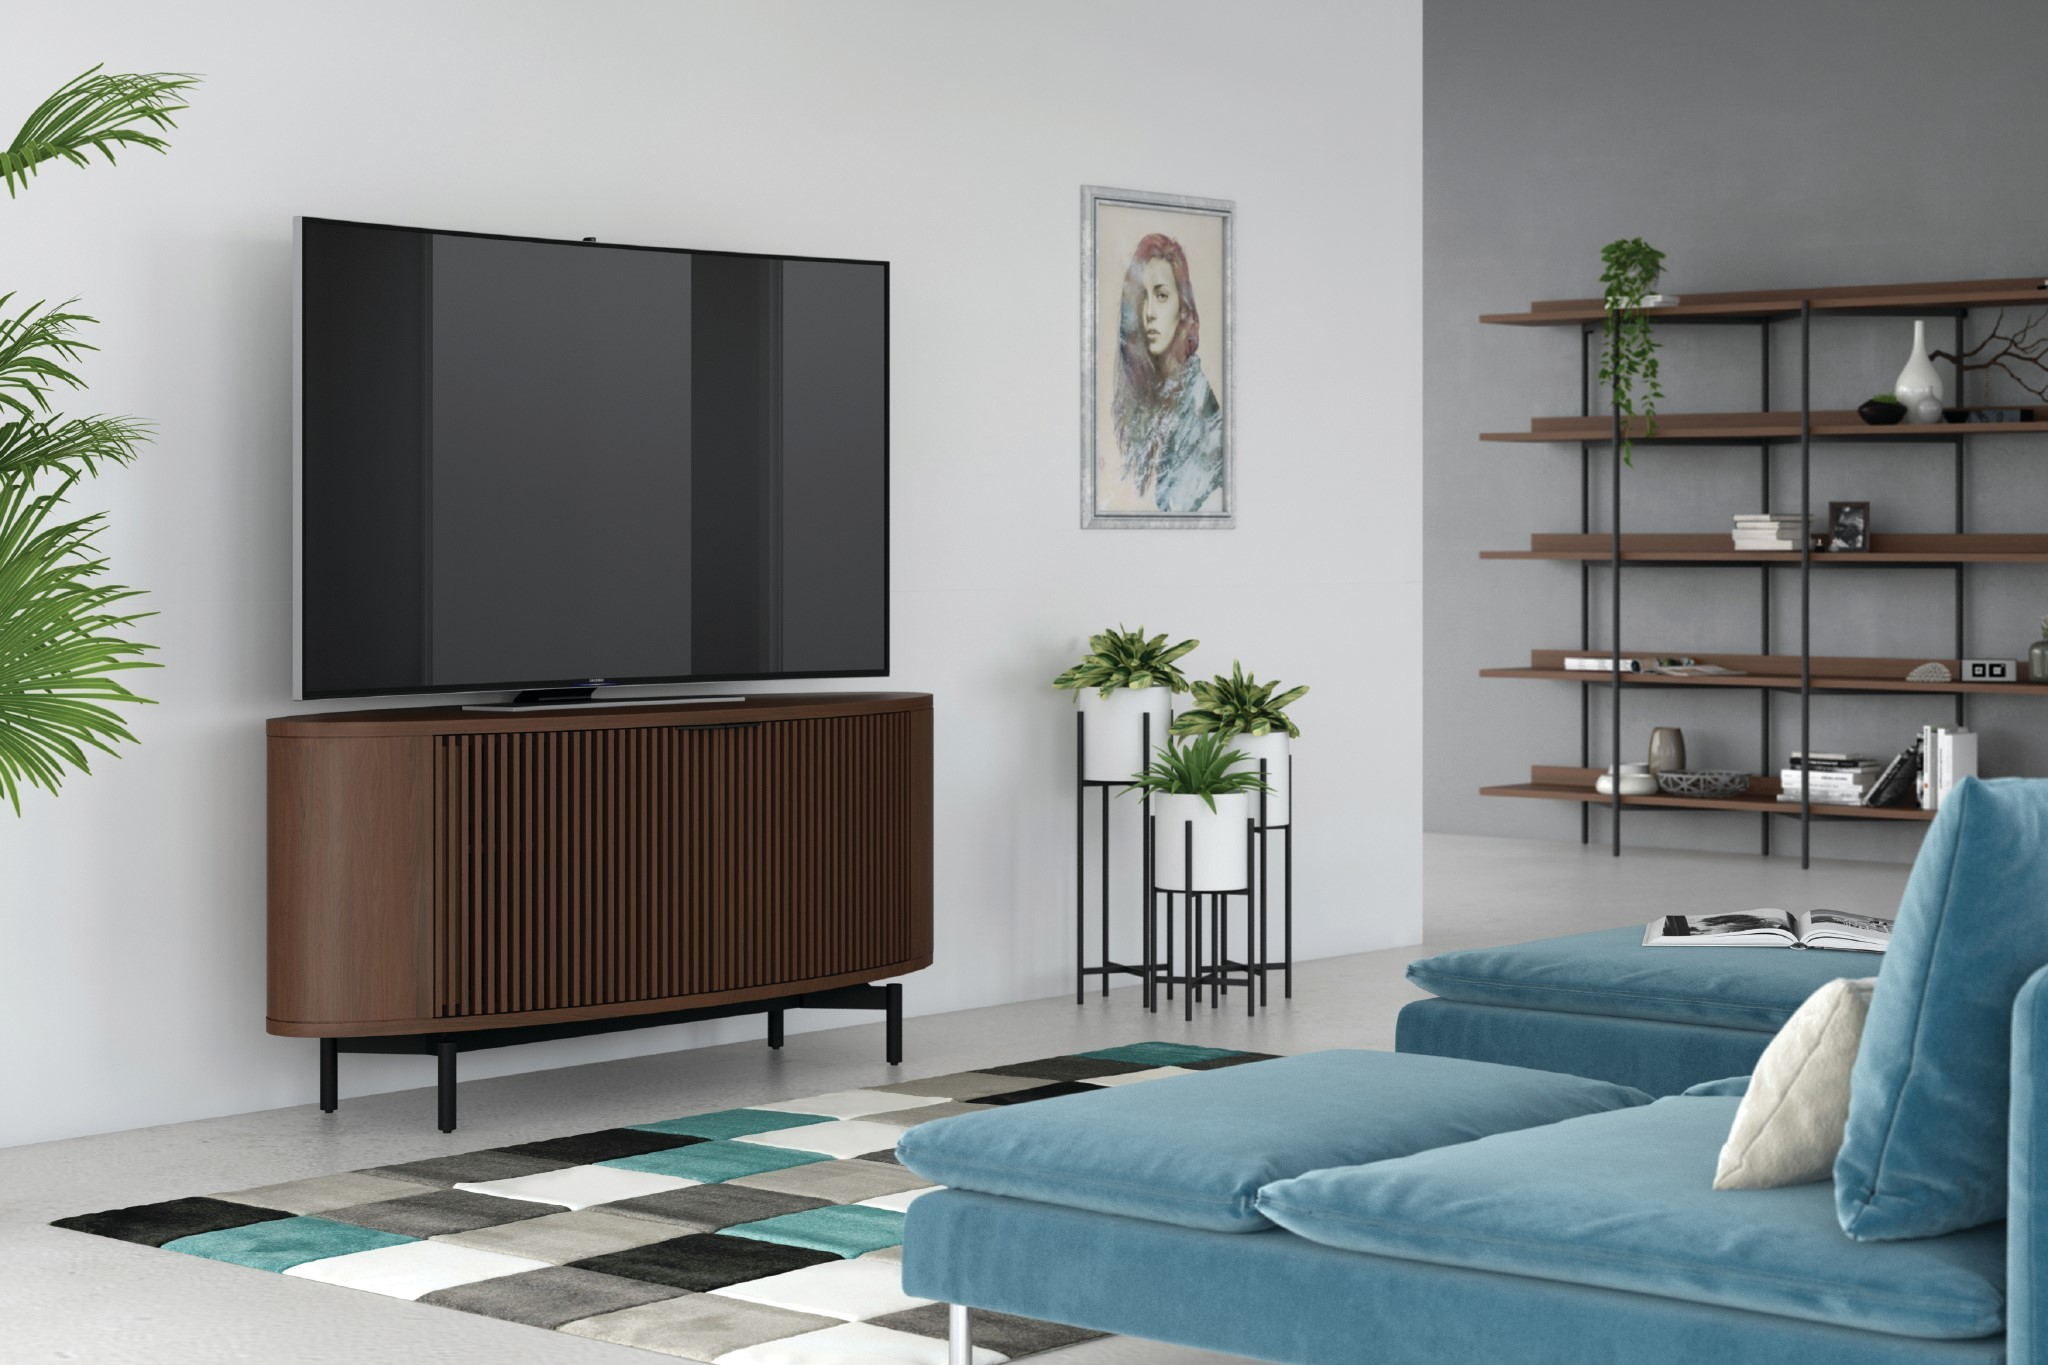 The Media Cabinet Includes A Full Width Soundbar Shelf, While The Louvered  Doors Not Only Provide A Beautiful Design Aesthetic, But Also Allow For  Full ...